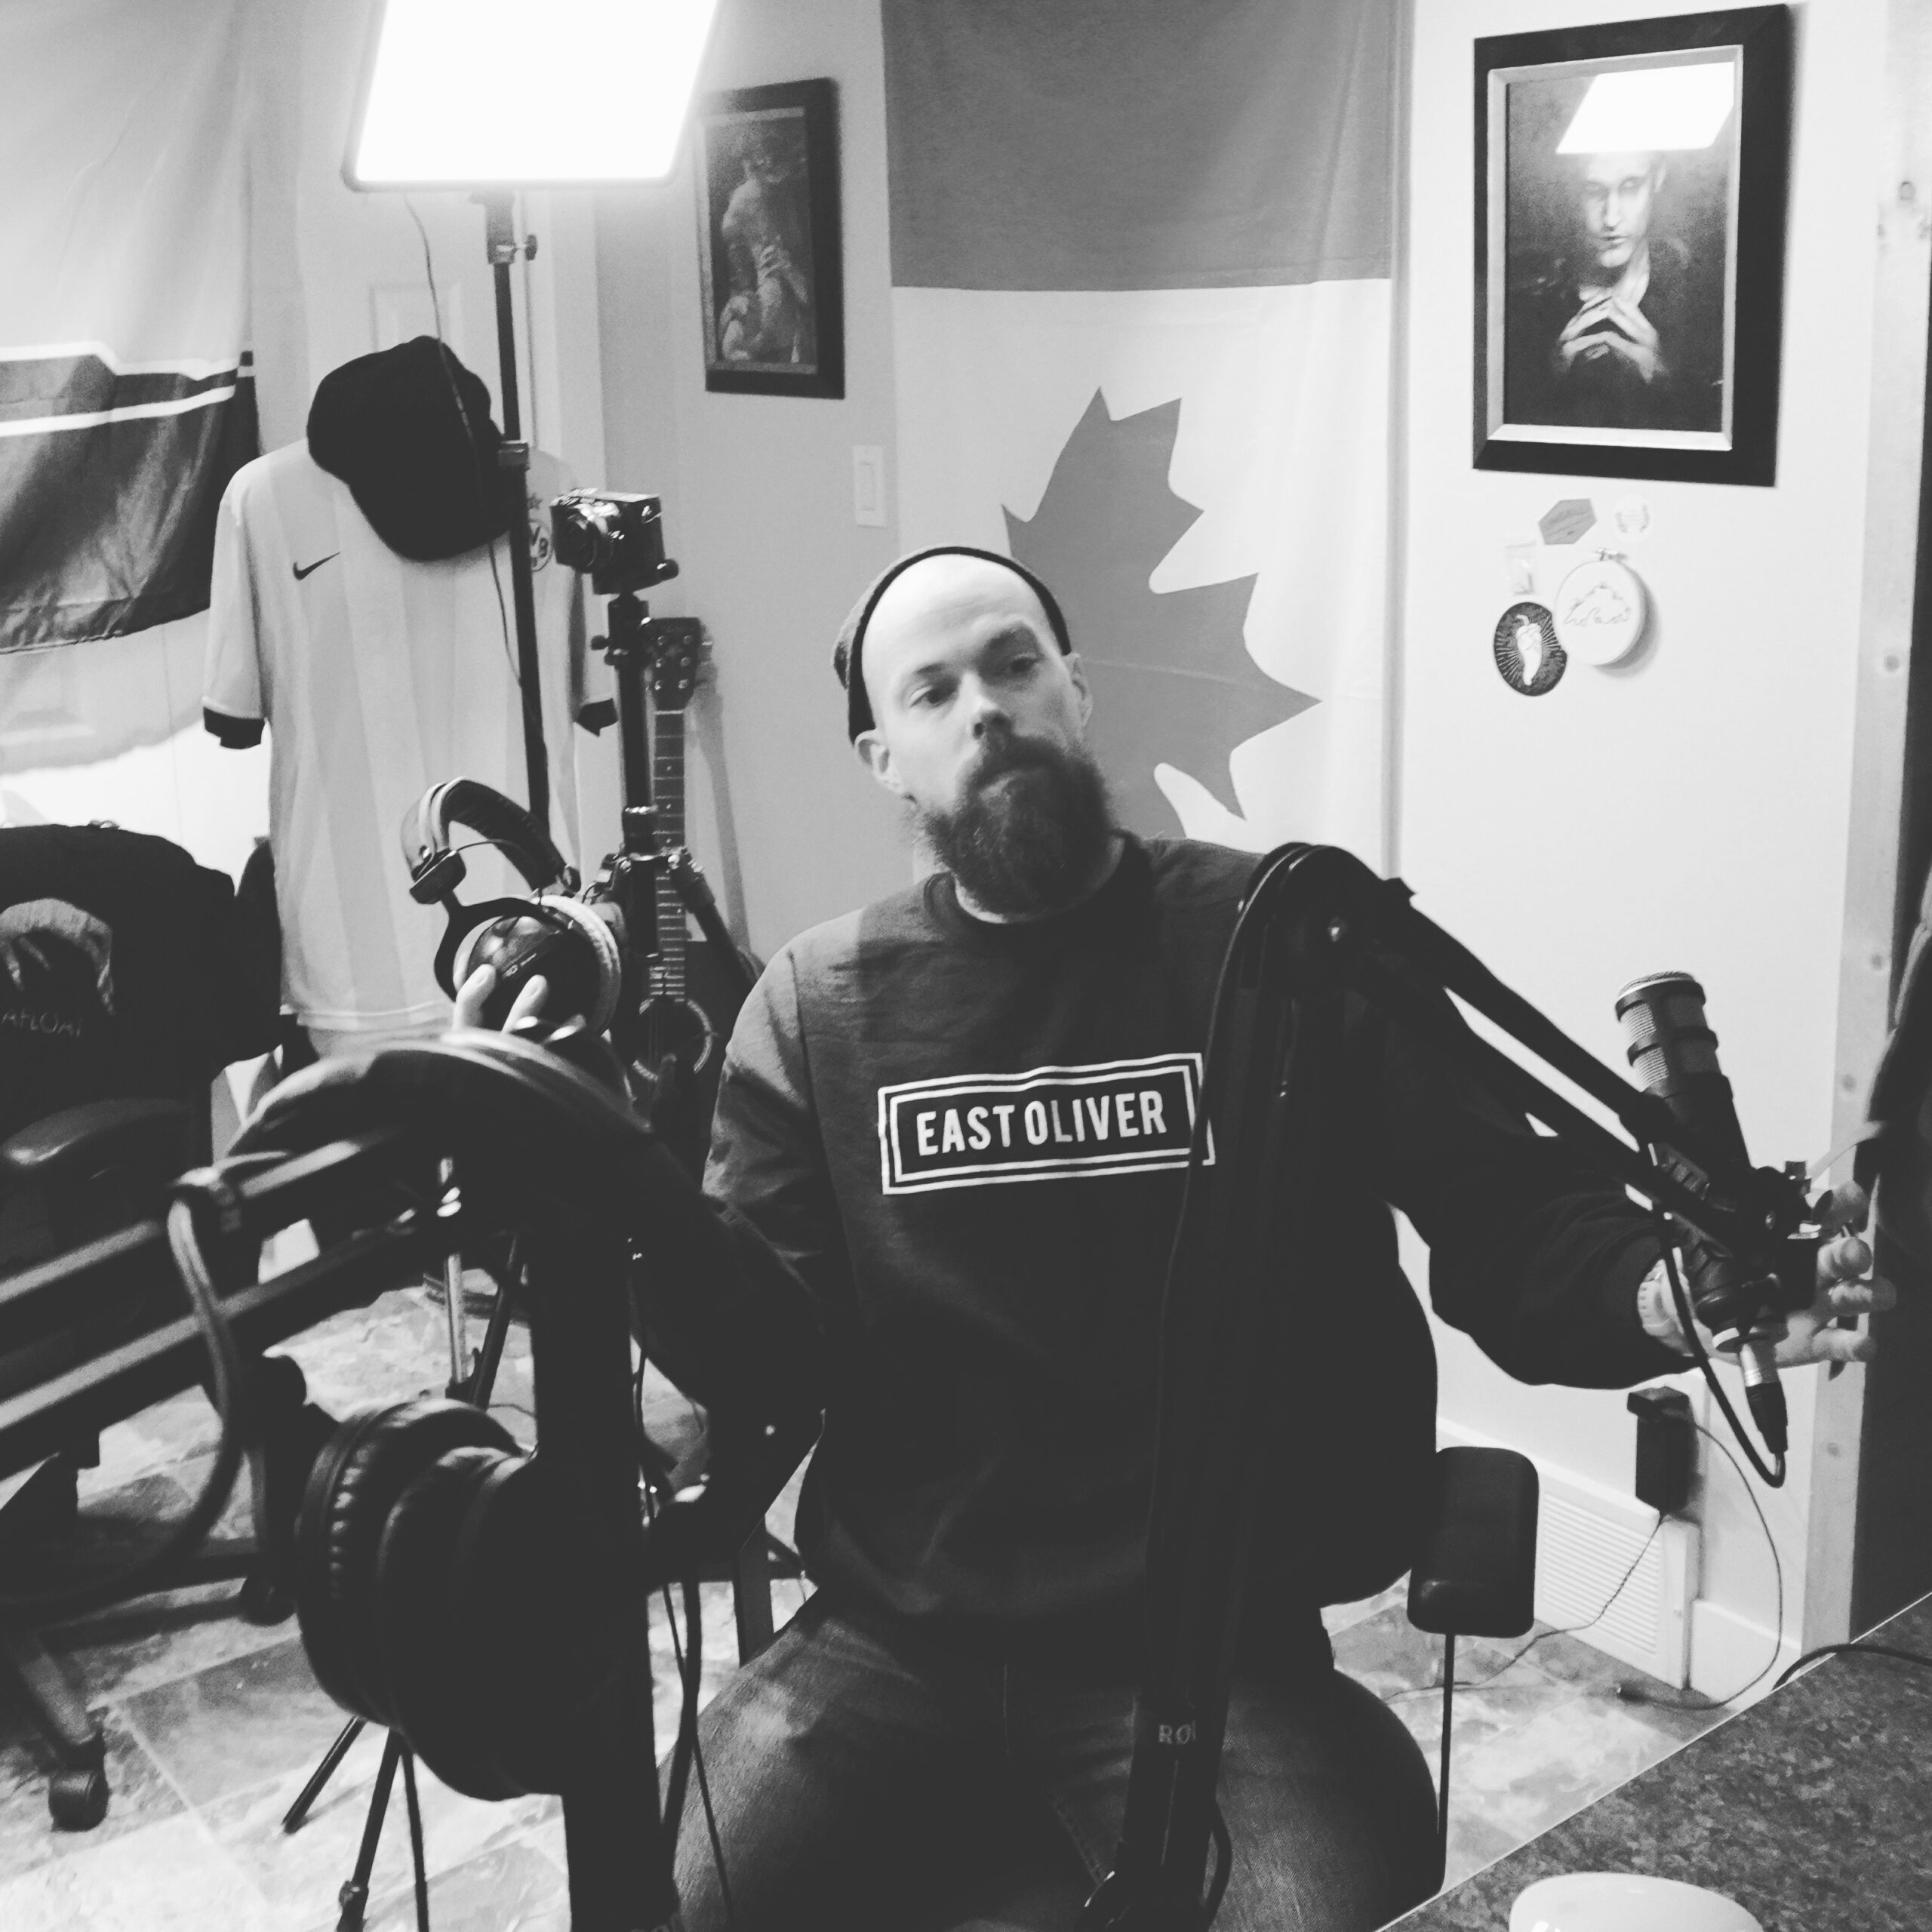 Michael Westermann setting up the studio in Thunder Bay